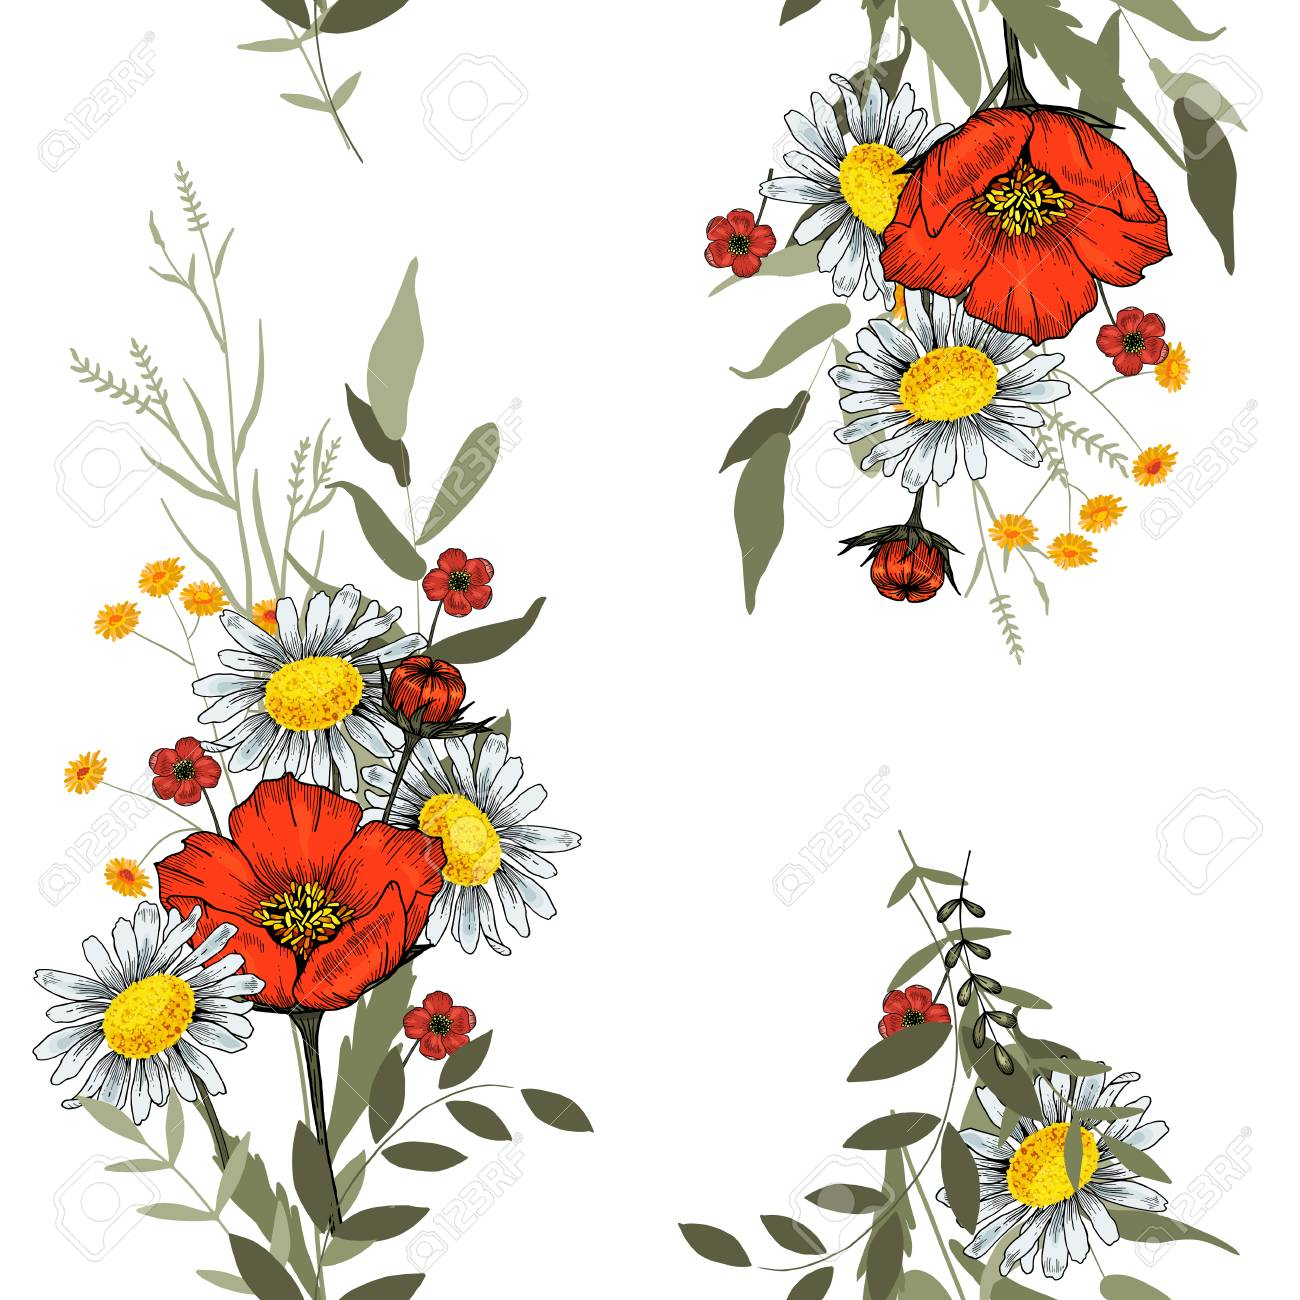 Abstract flower drawing. Realistic isolated seamless flower pattern